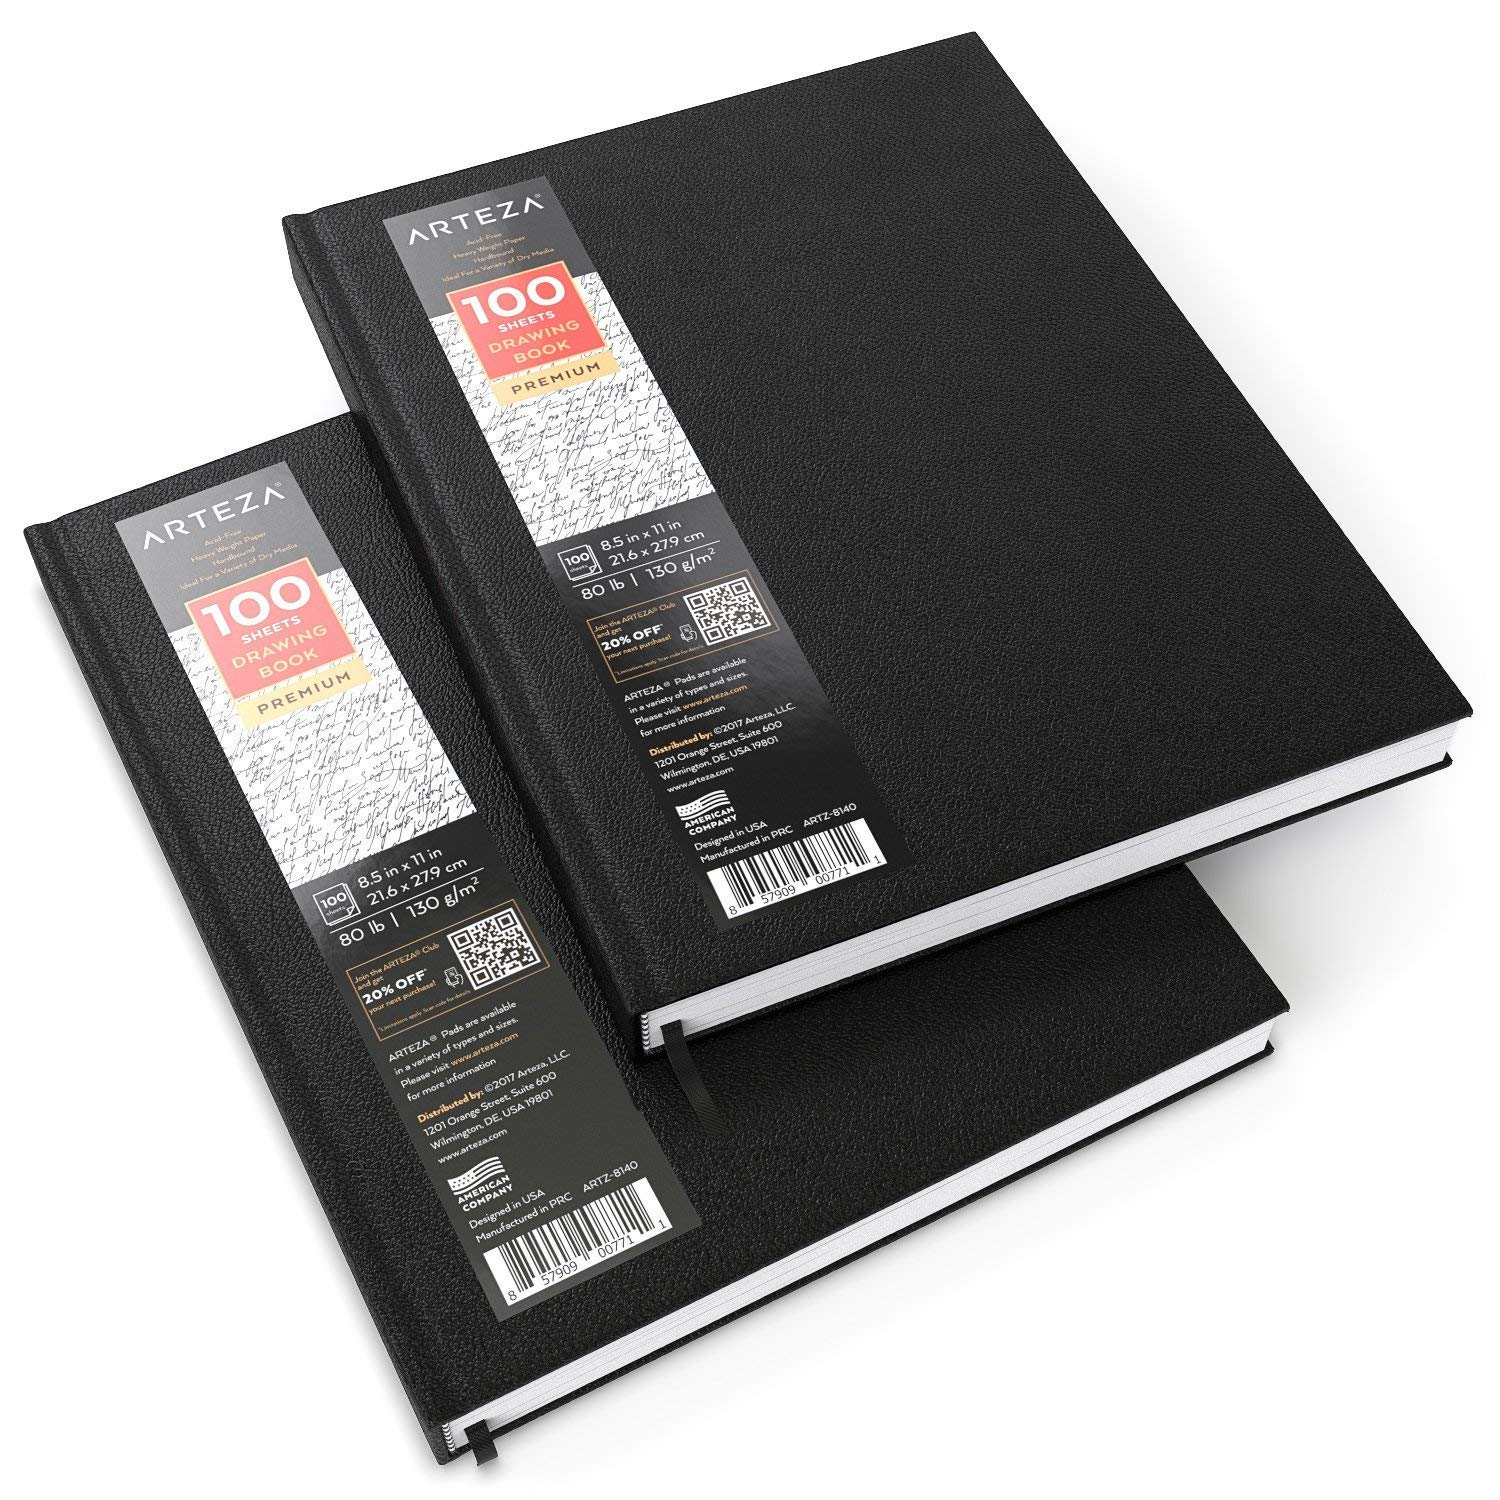 ARTEZA 8.5x11 Hardbound Sketchbook, Set of 2 Heavyweight Hard Cover Sketch Journals, 100 Sheets Each, 80lb/130gsm, Perfect for Drawing, Sketching, and Journaling (Set of 4)